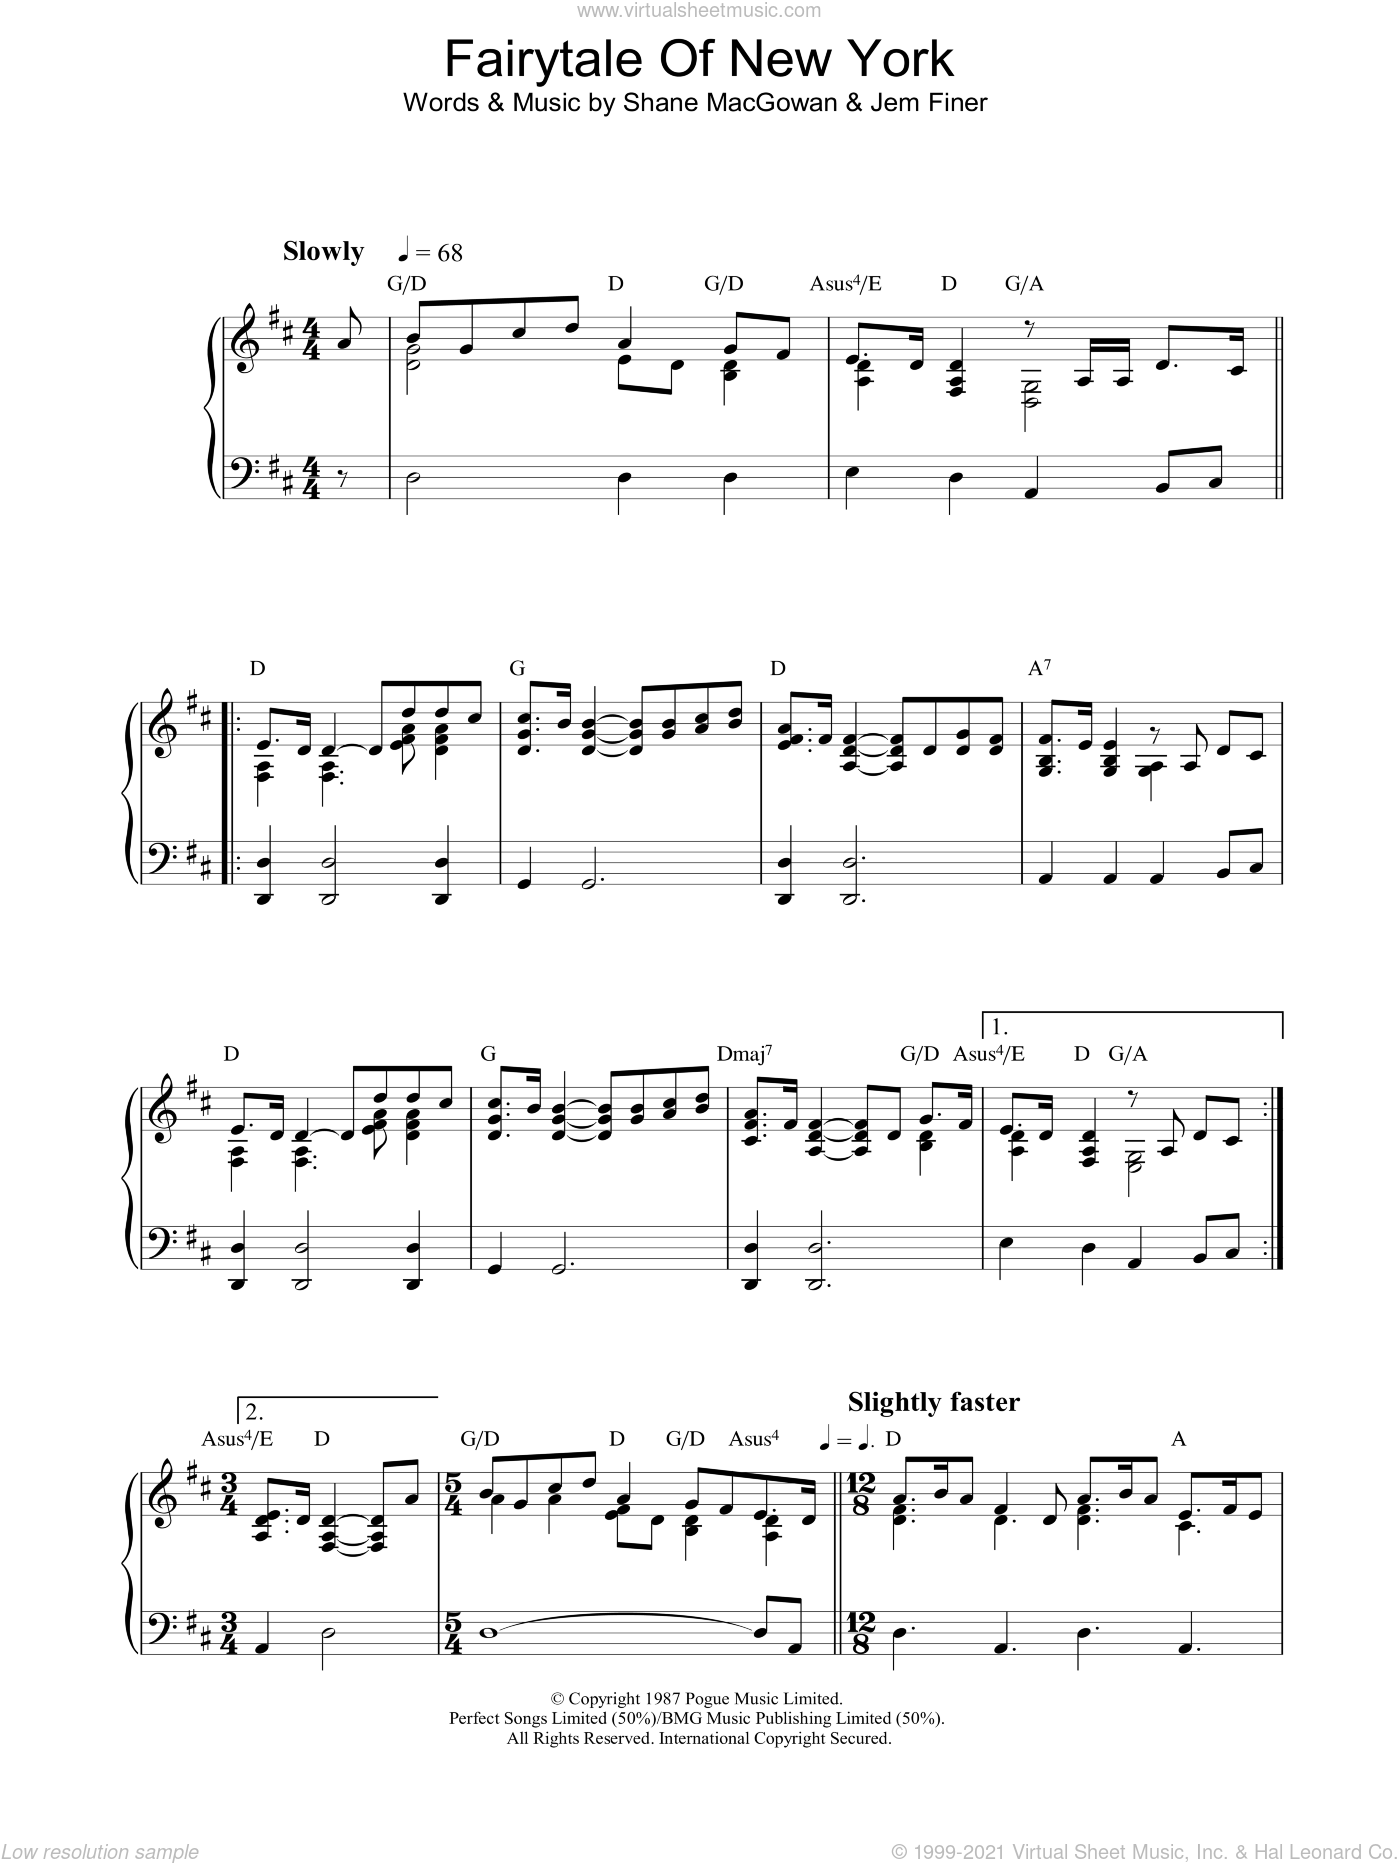 Fairytale Of New York sheet music for piano solo by The Pogues, Kirsty MacColl, Jem Finer and Shane MacGowan, intermediate skill level